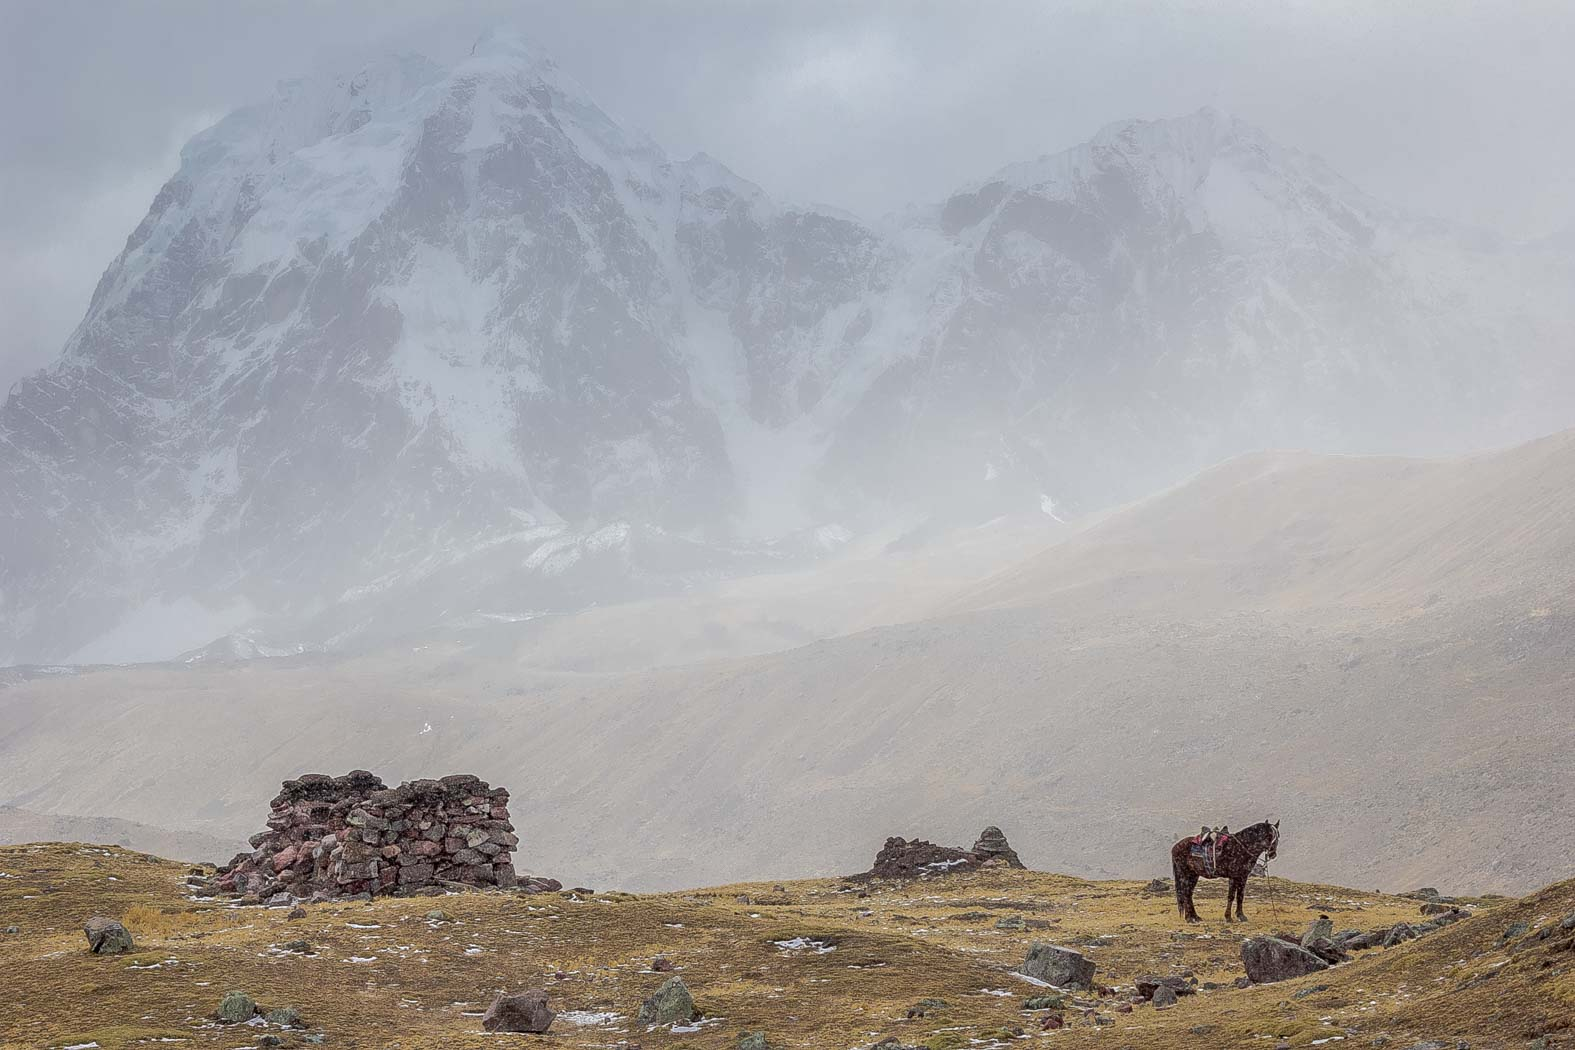 A lone horse standing in the coming storm.